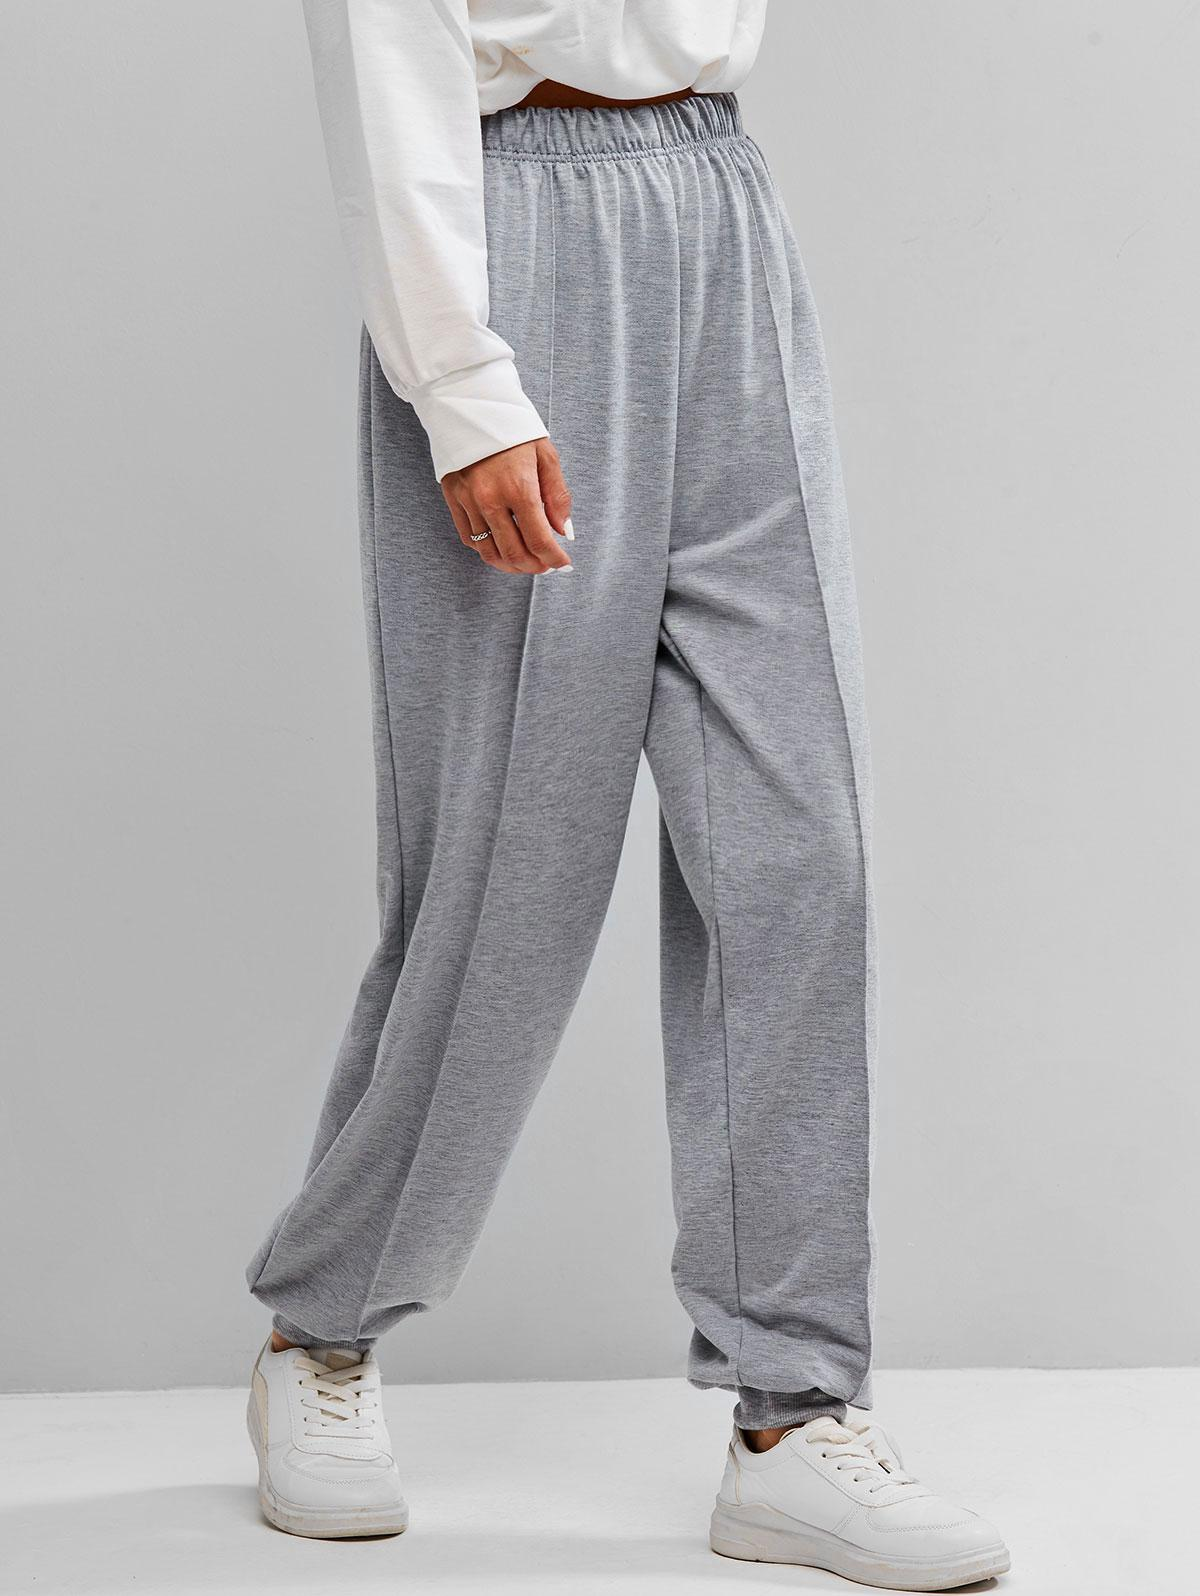 Seam Detail High Rise Pull On Jogger Pants